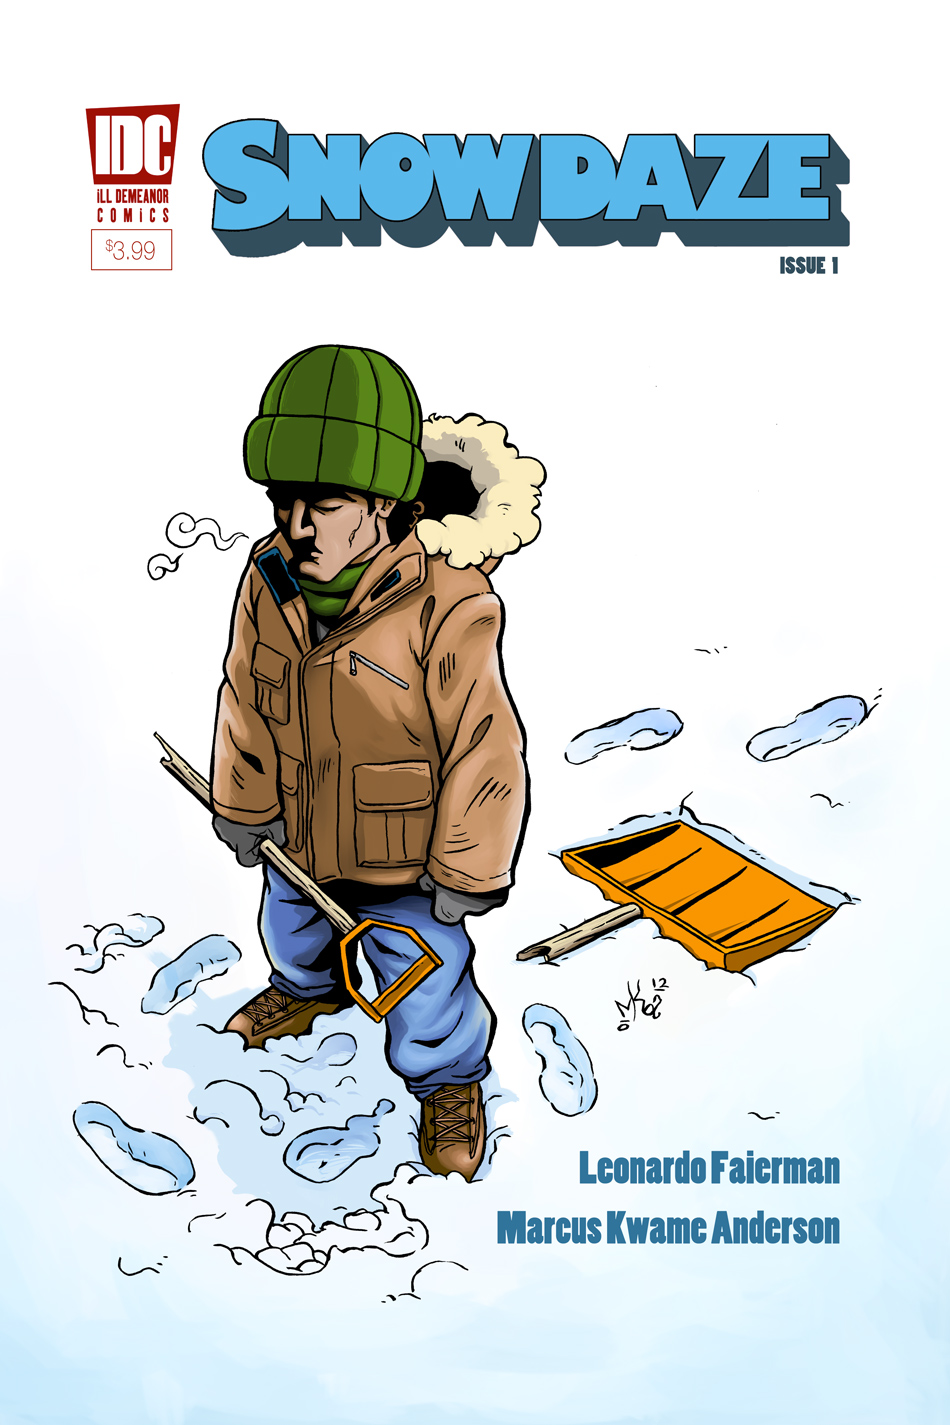 Snow Daze #1, Cover